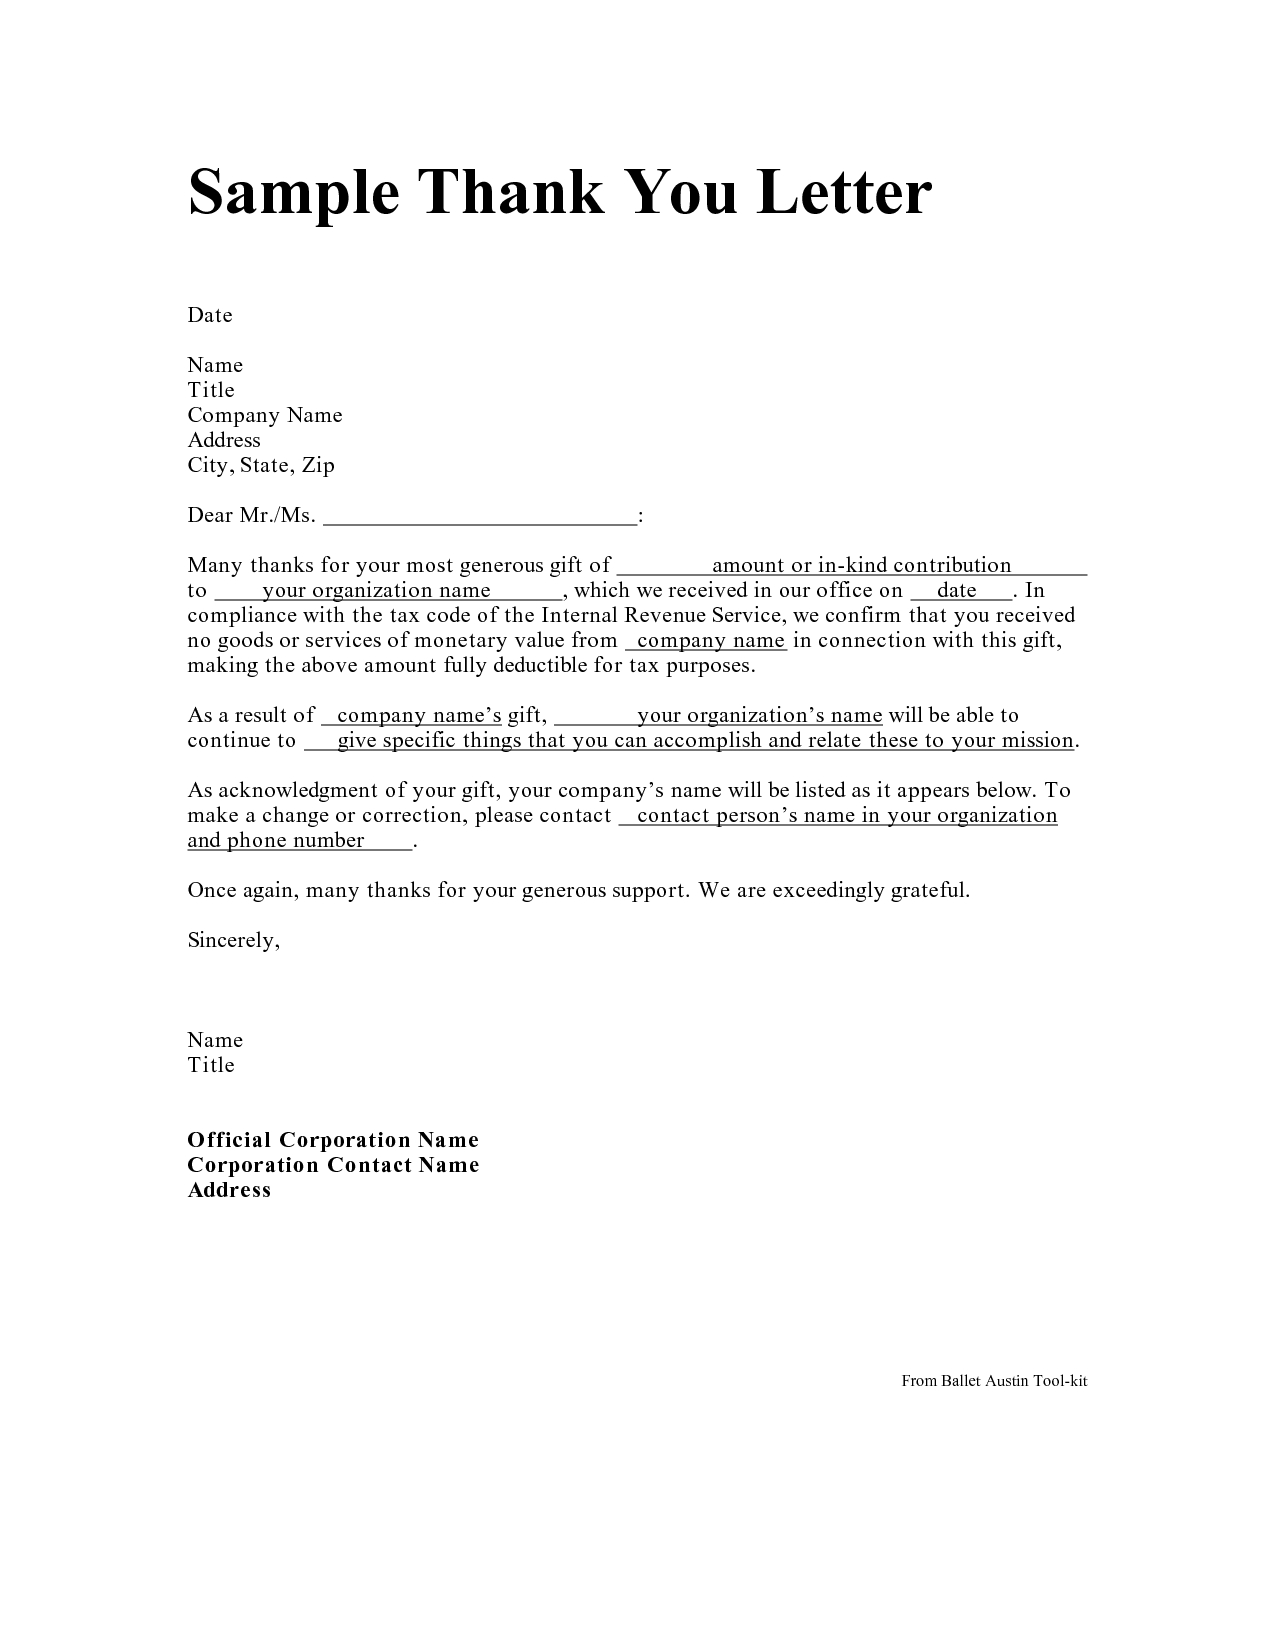 Gift Letter Template Uk - Personal Thank You Letter Personal Thank You Letter Samples